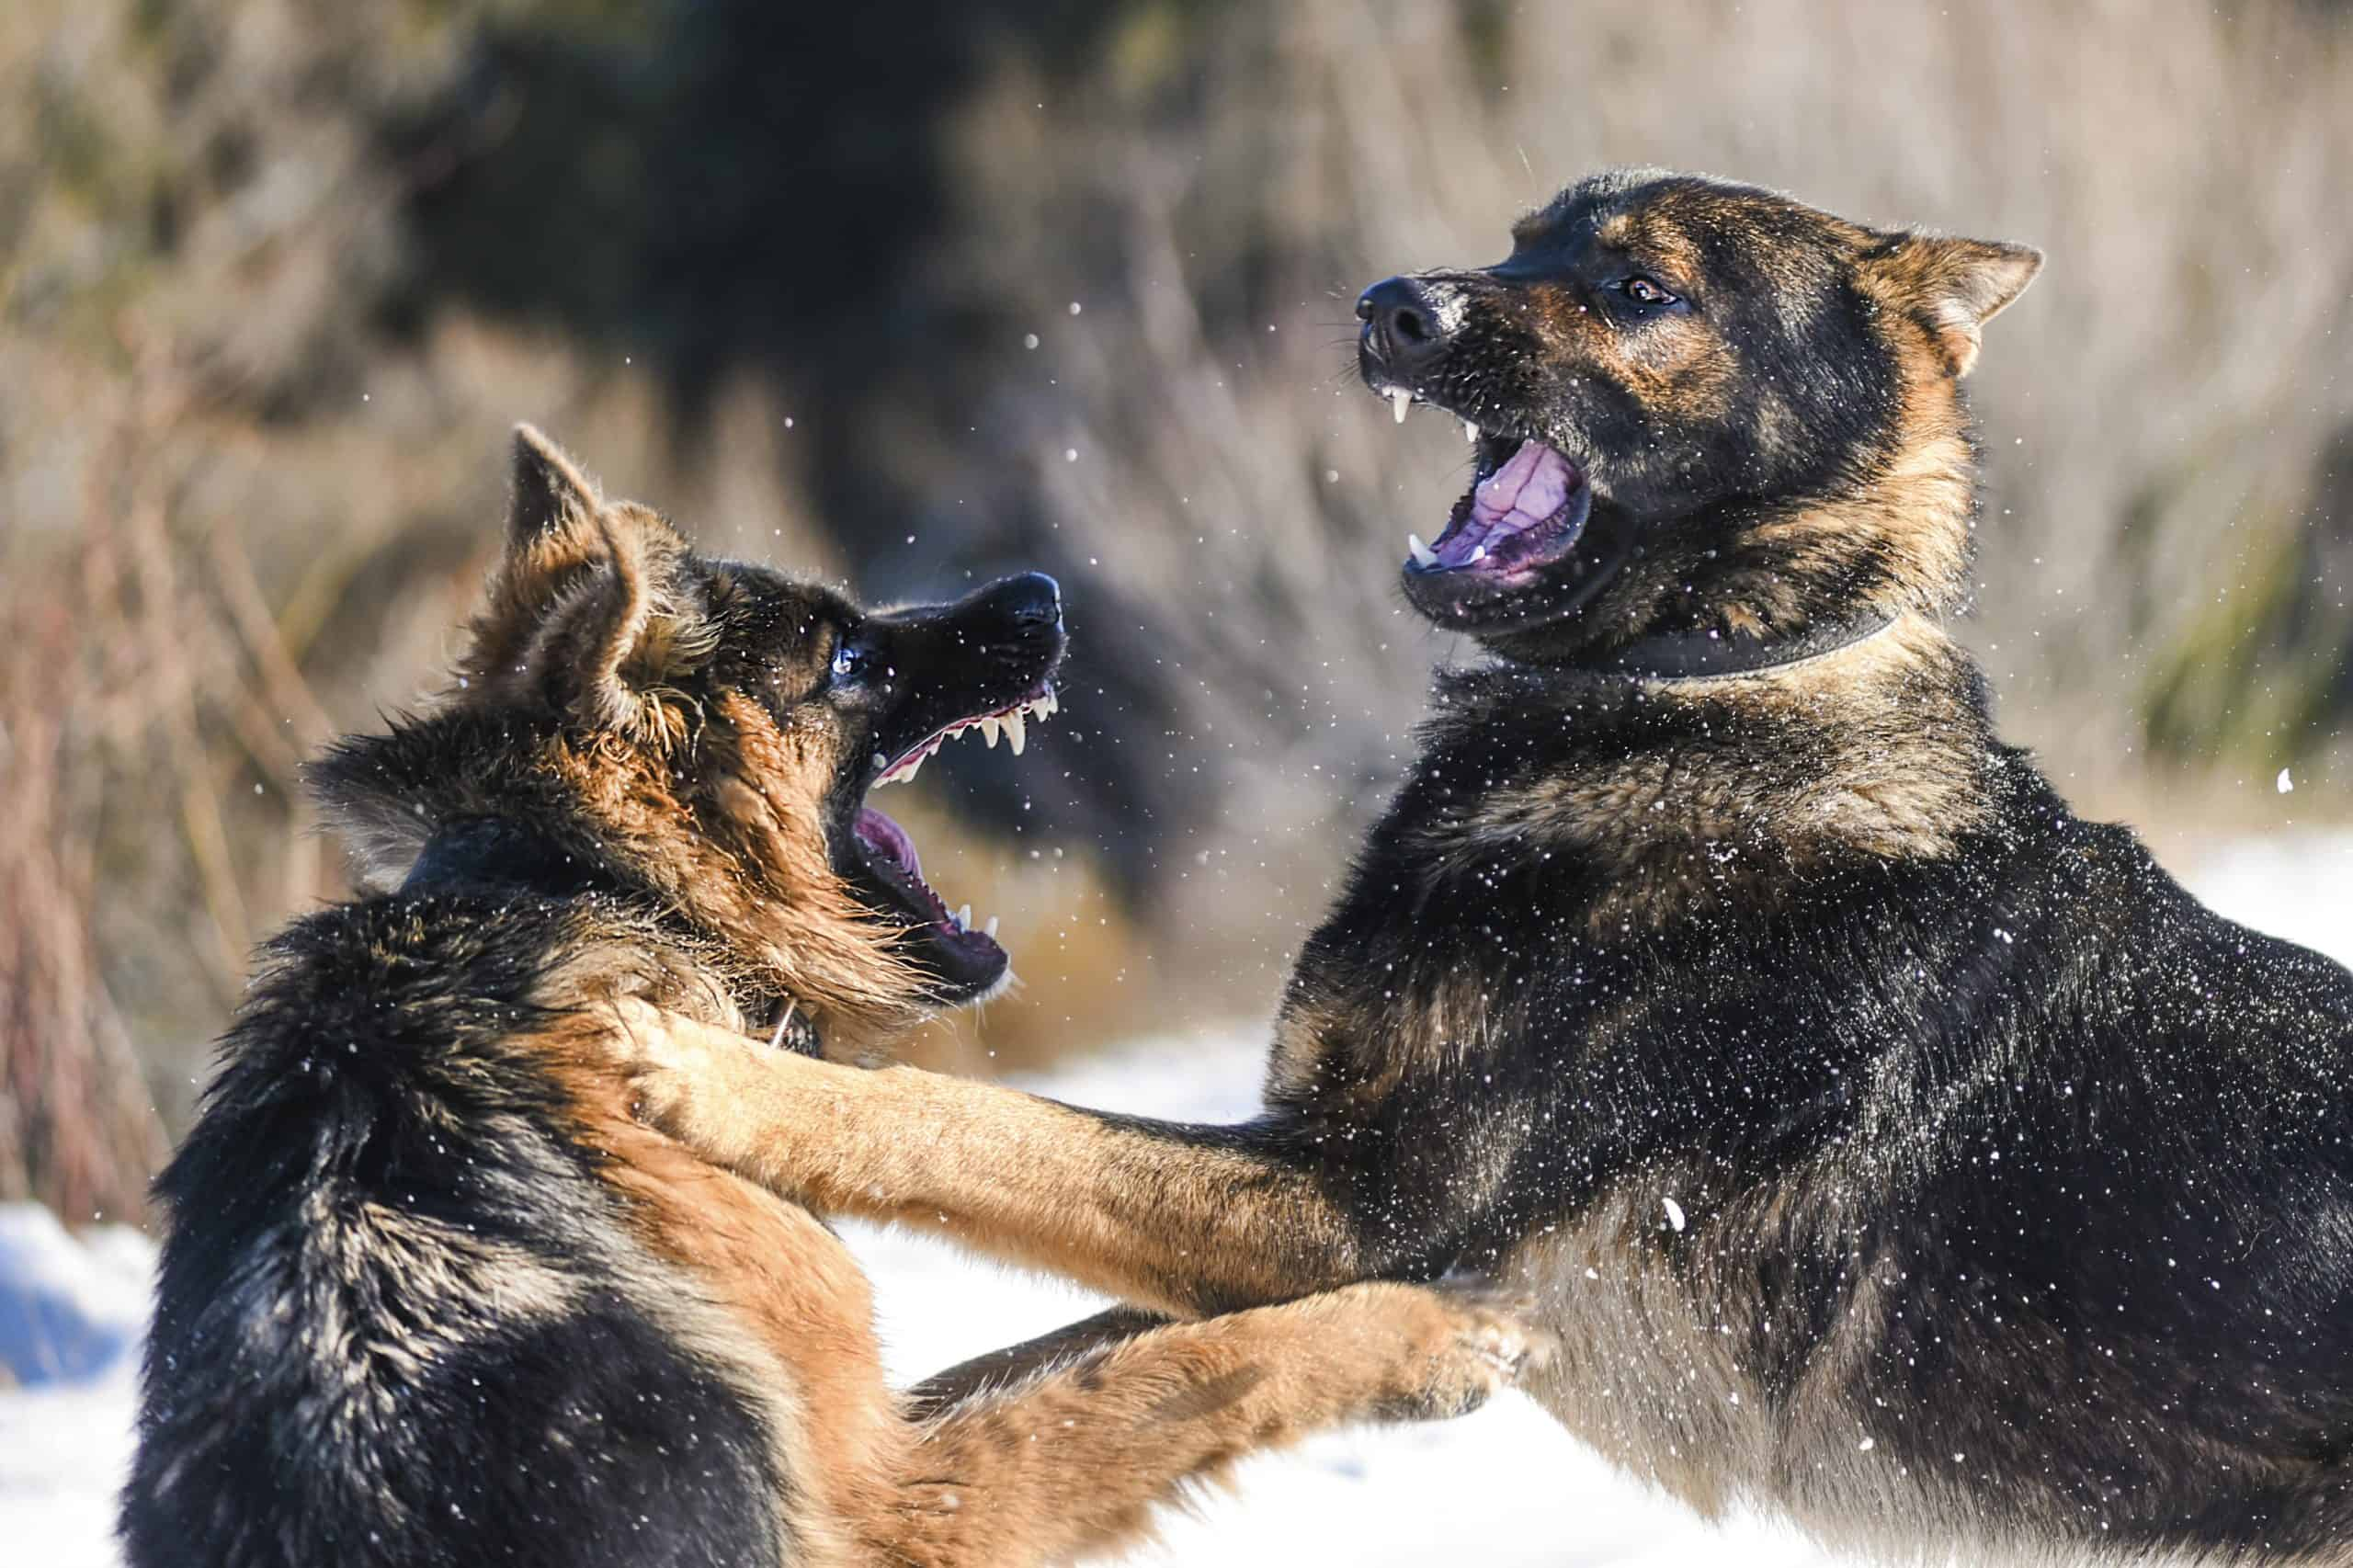 Two German Shepherds fighting. To keep them calm and avoid aggressive behavior, German Shepherd dogs require a lot of training.